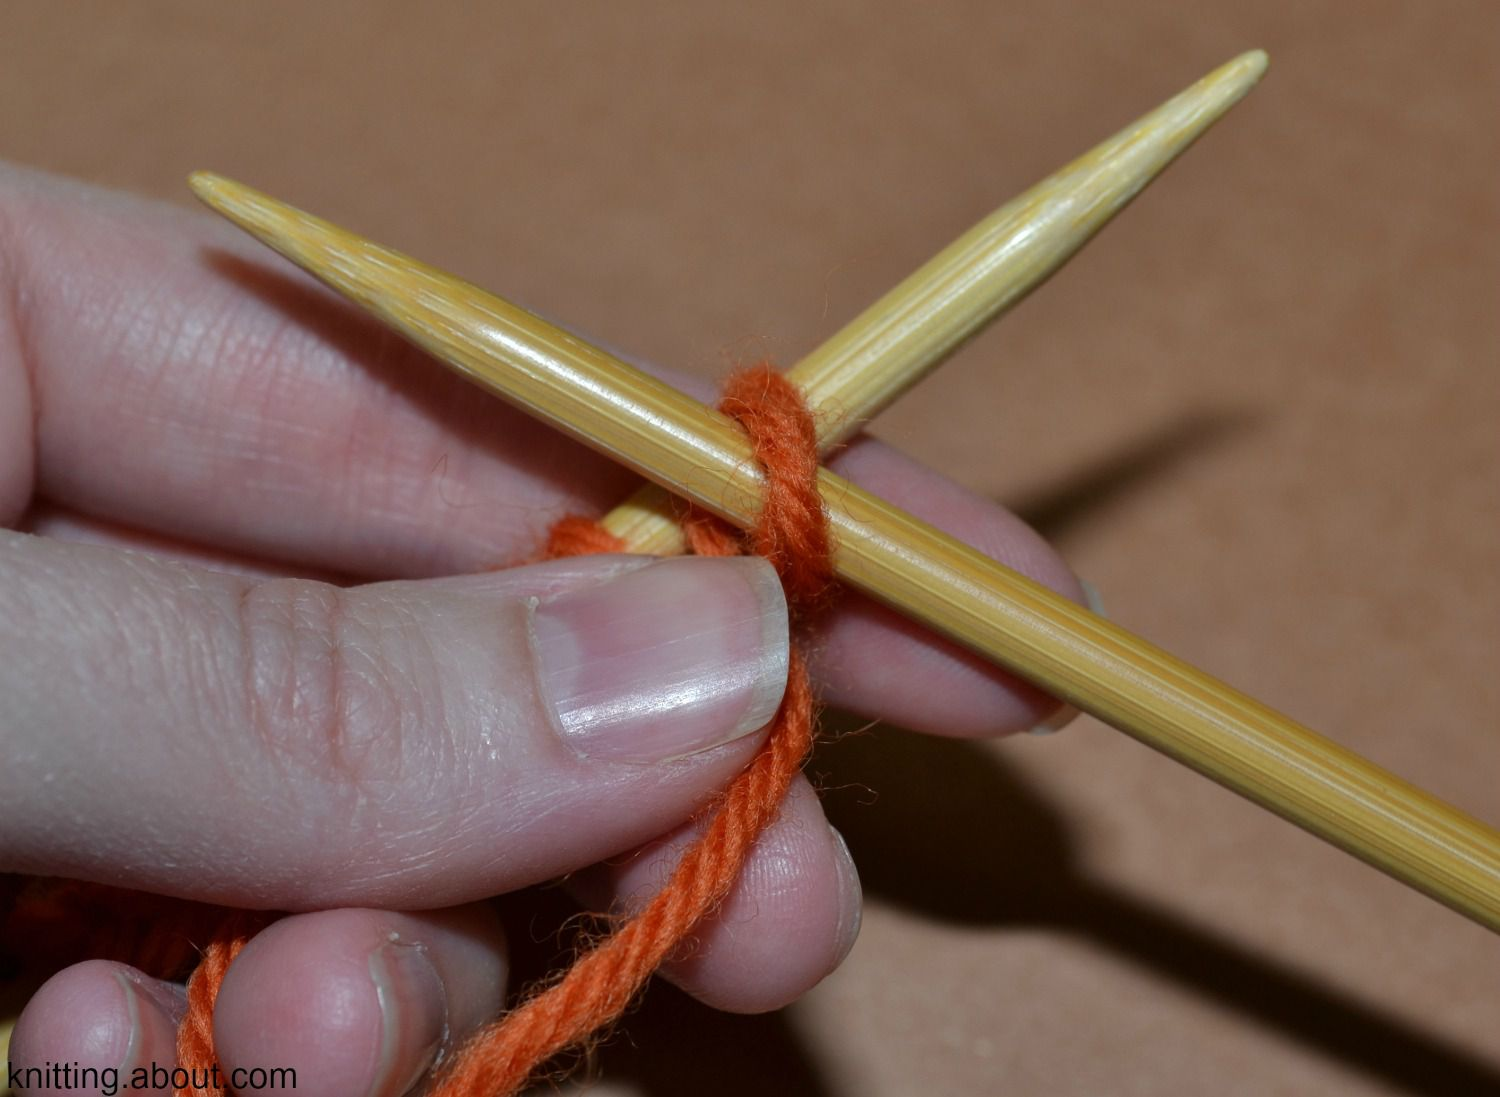 The yarn wrapped over the needle to form a purl stitch.